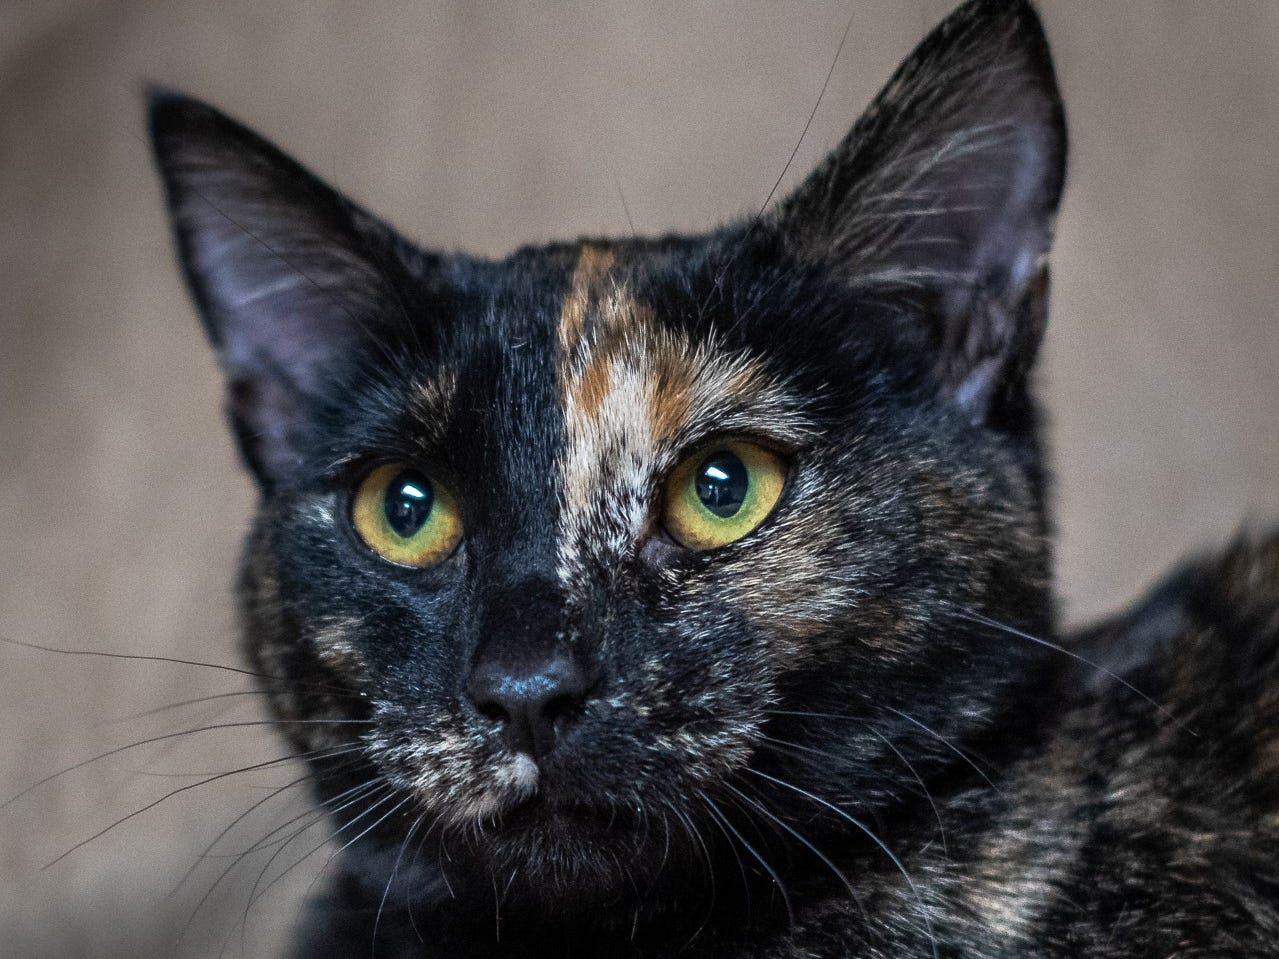 Nala - Female domestic short hair, about 1 year old. Intake date: 2/12/2019